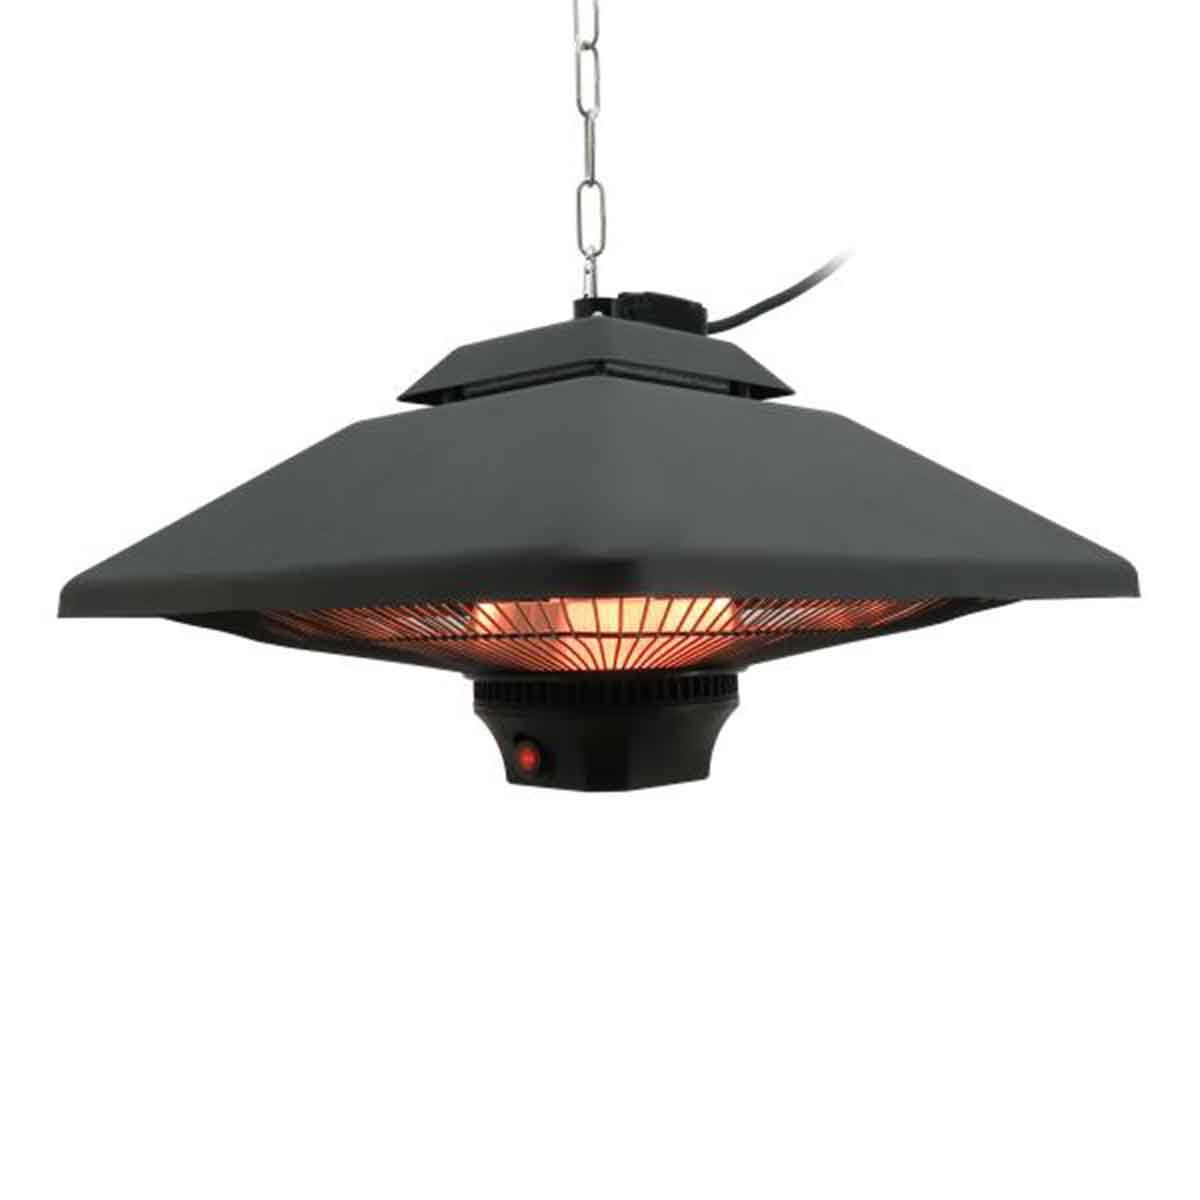 Outsunny 2kw Hanging Halogen Electric LED Patio Heater